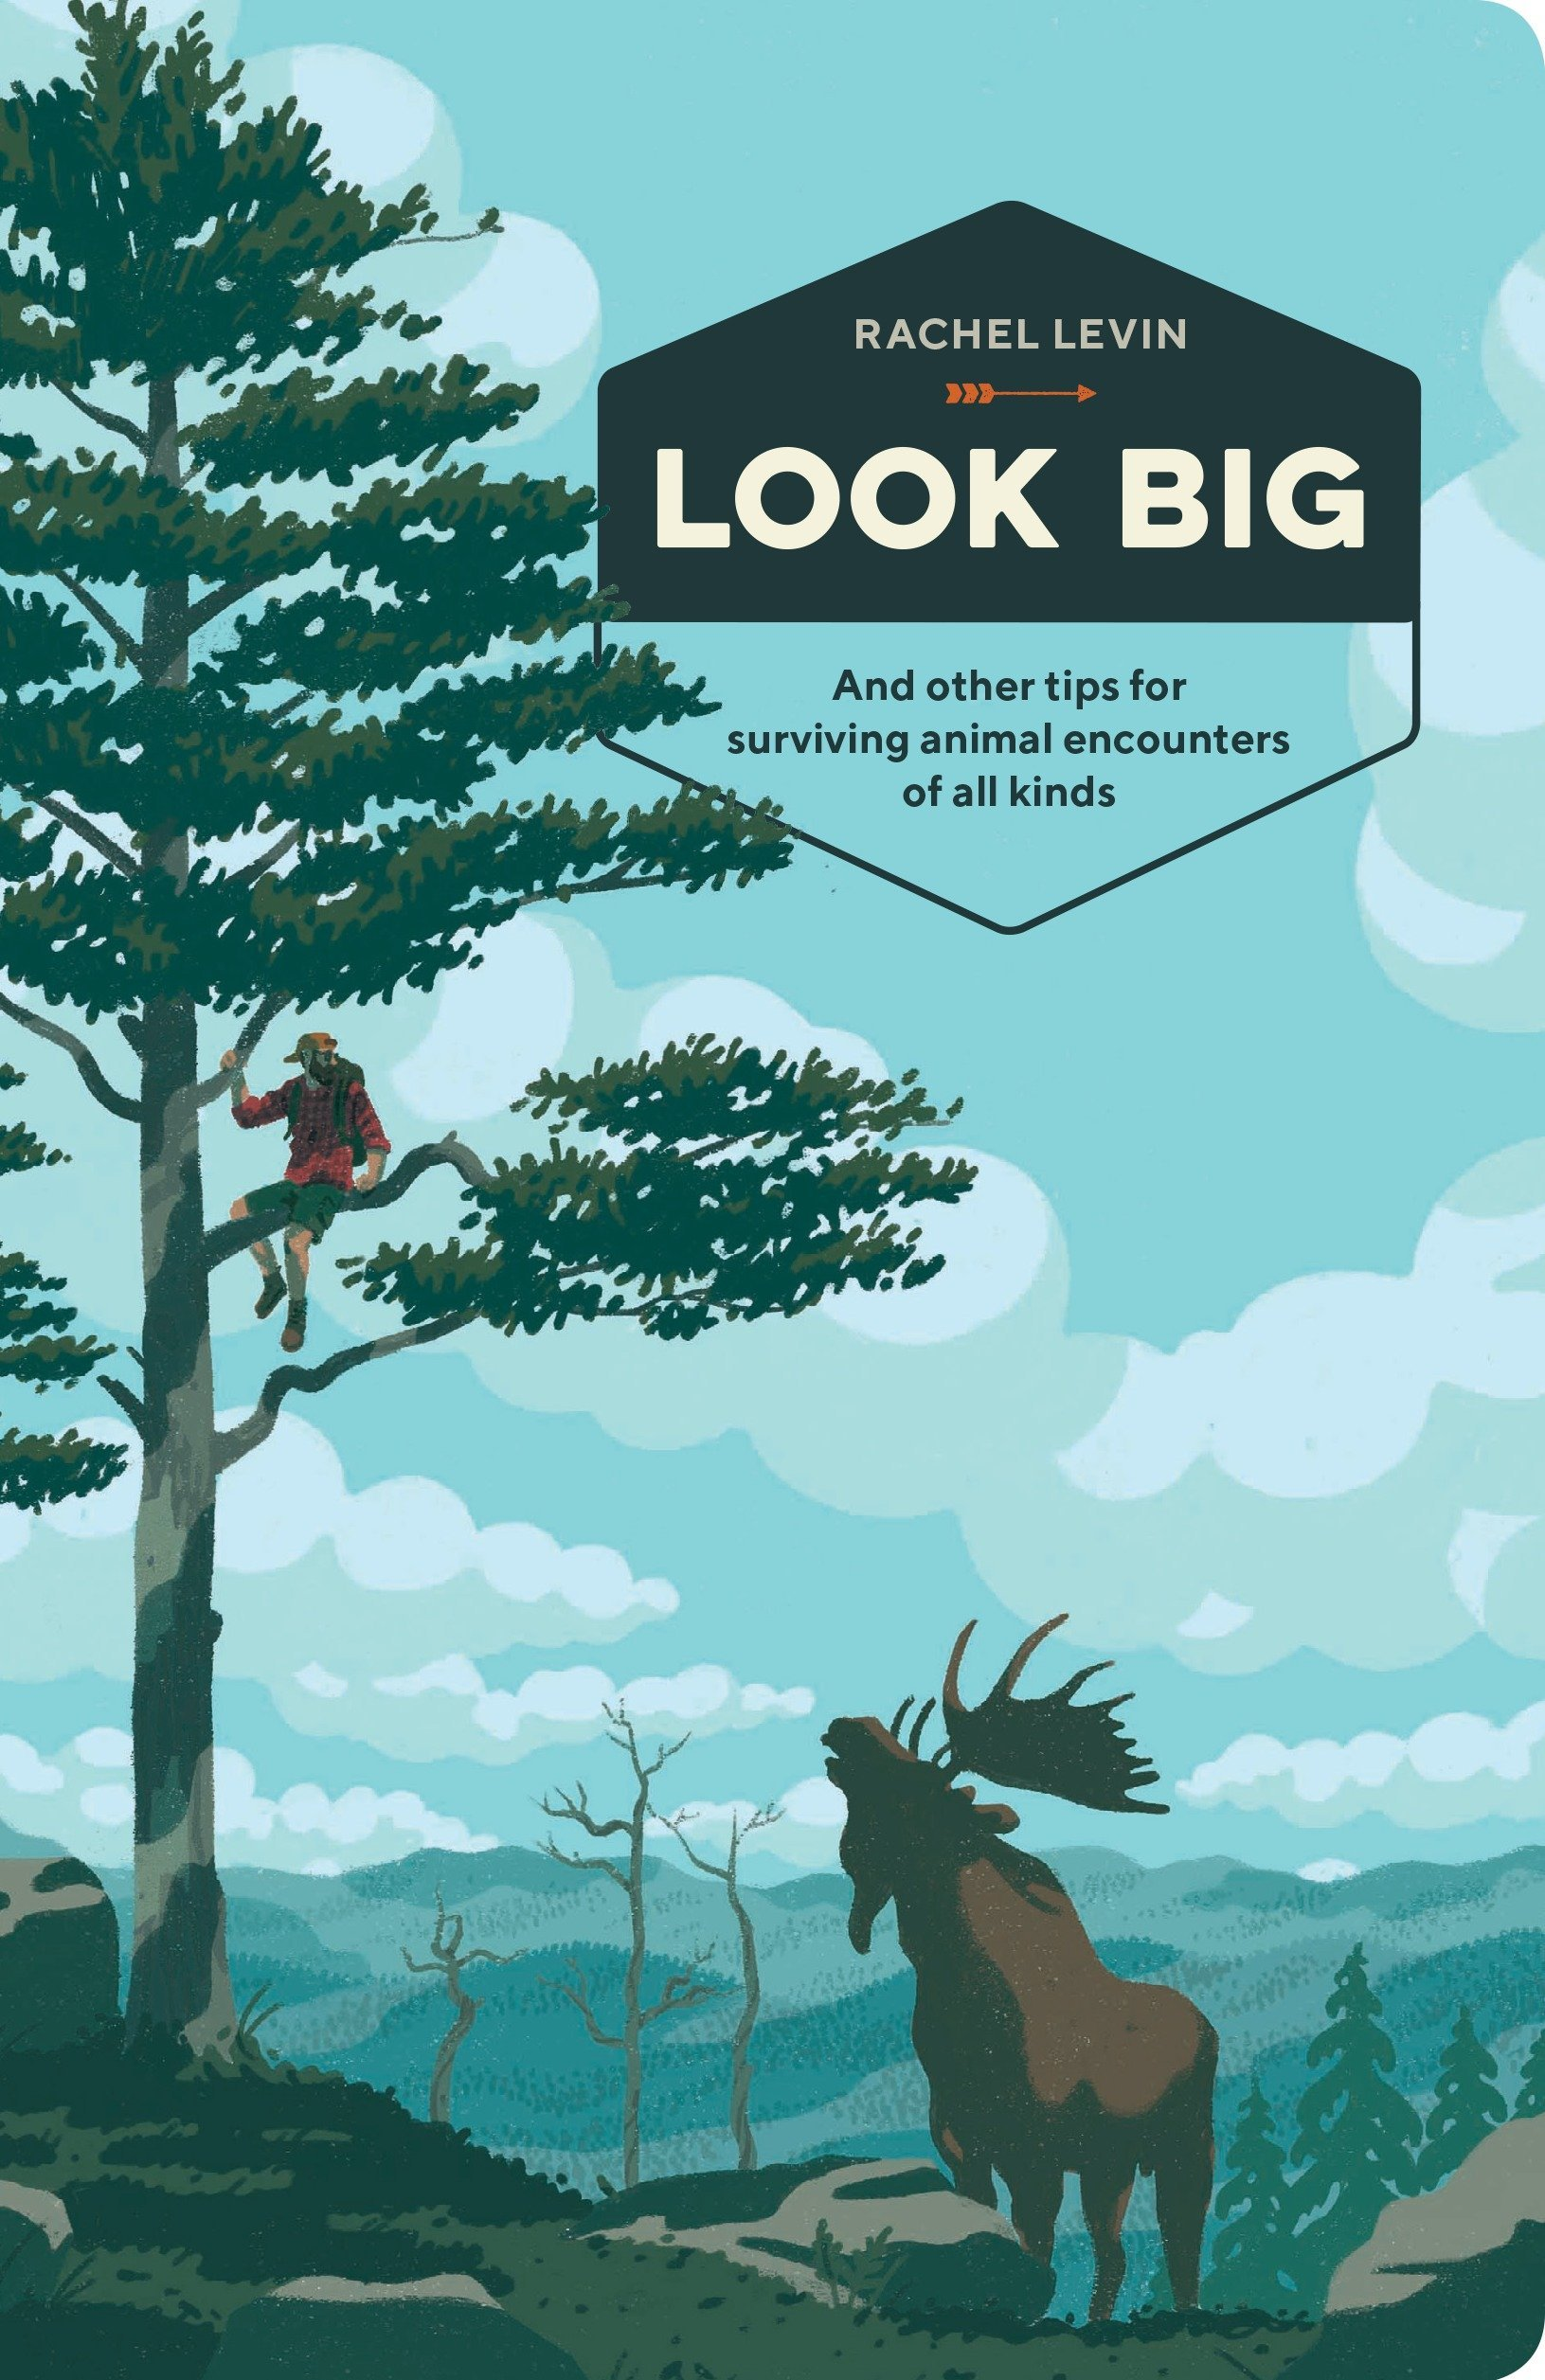 Look Big: And Other Tips for Surviving Animal Encounters of All Kinds PDF